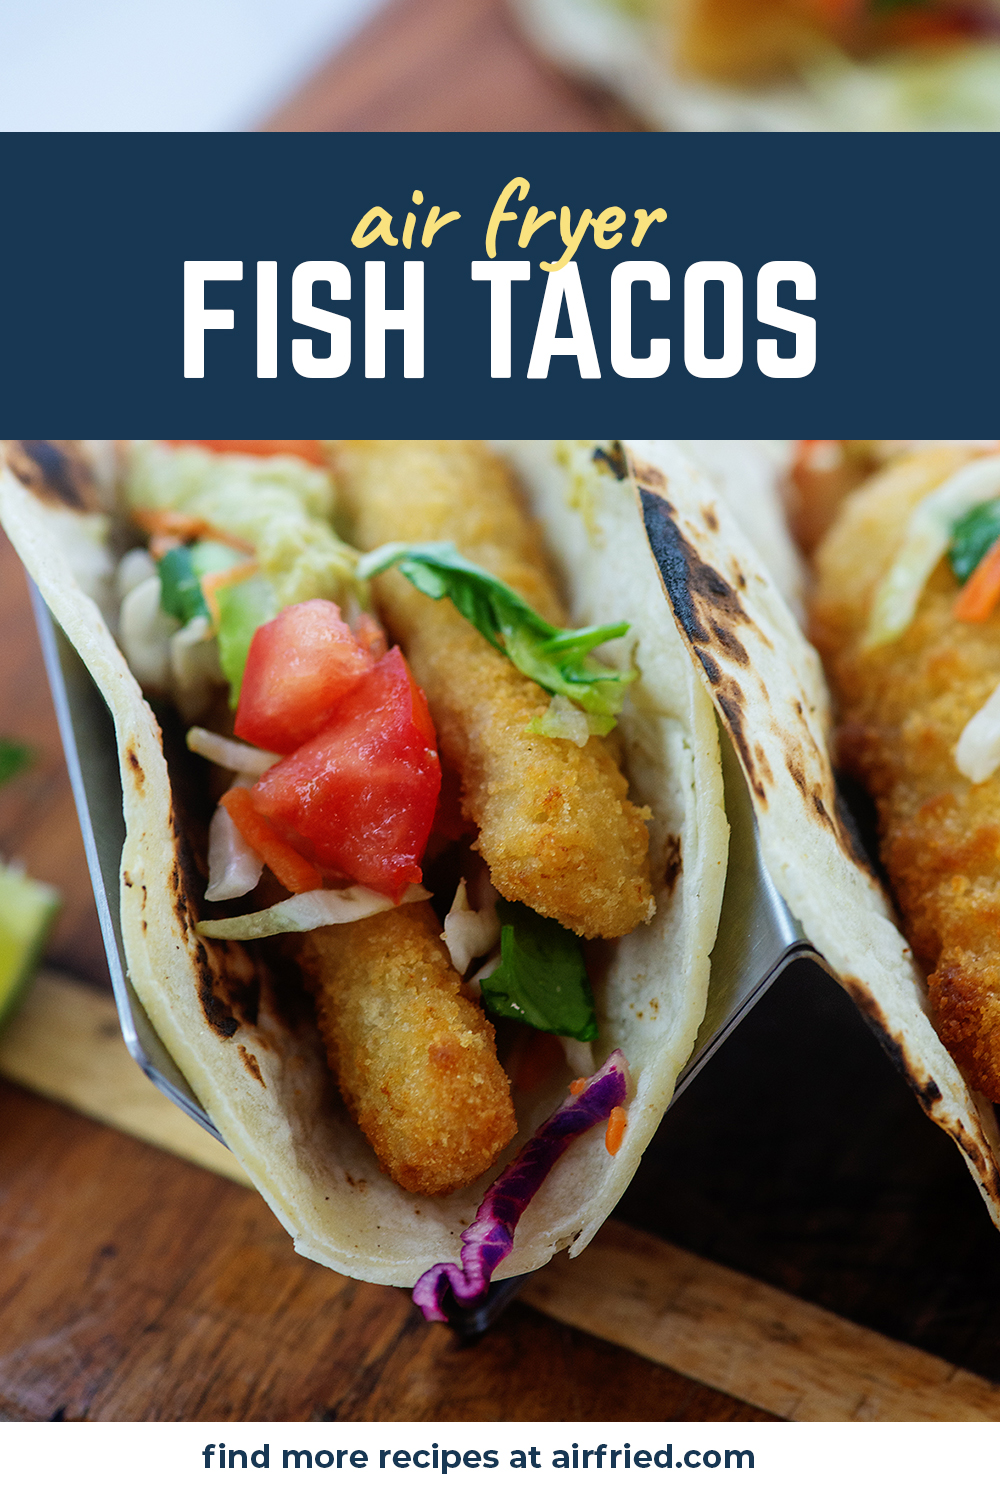 These fish tacos are made with air fried fish sticks to keep them crispy and easy.  Then we topped them with our favorite toppings!